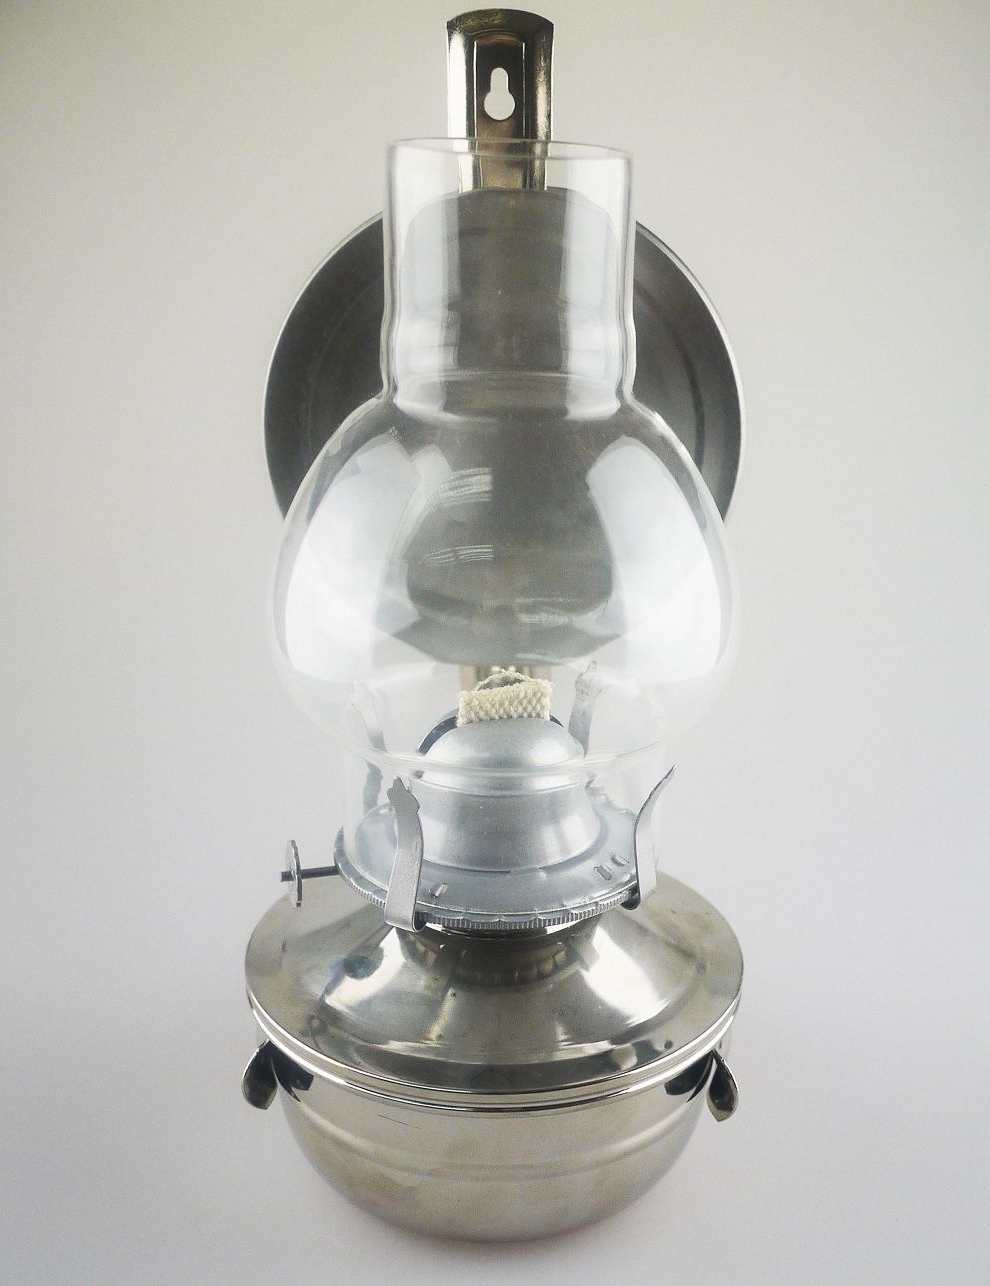 Free Shipping Purism Style Glass Outdoor Retro Lighting Torch For Favorite Outdoor Kerosene Lanterns (View 5 of 20)